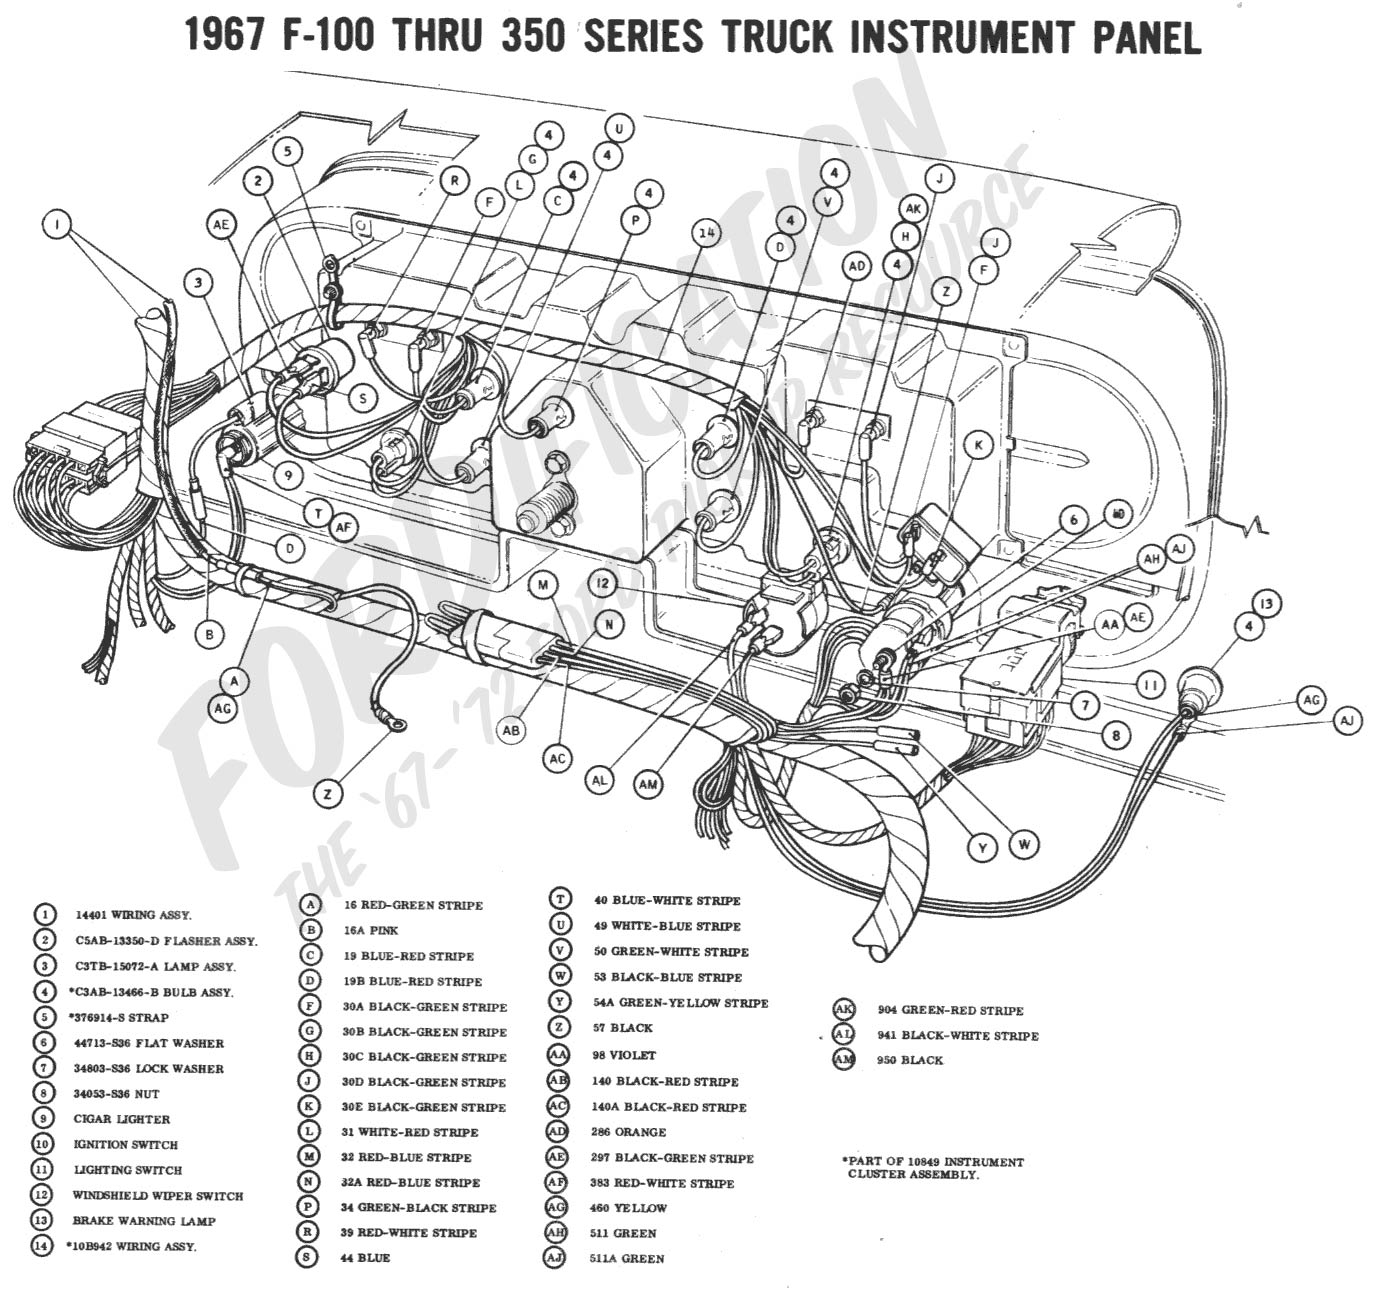 06 Pt Cruiser Fuse Box Diagram likewise Schematics h as well Chrysler 300 2005 Fuse Box Diagram besides 2006 Suzuki Forenza Fuse Box Diagram furthermore 1988 Chevrolet S10 Wiring Diagram. on 2002 pt cruiser fuse panel